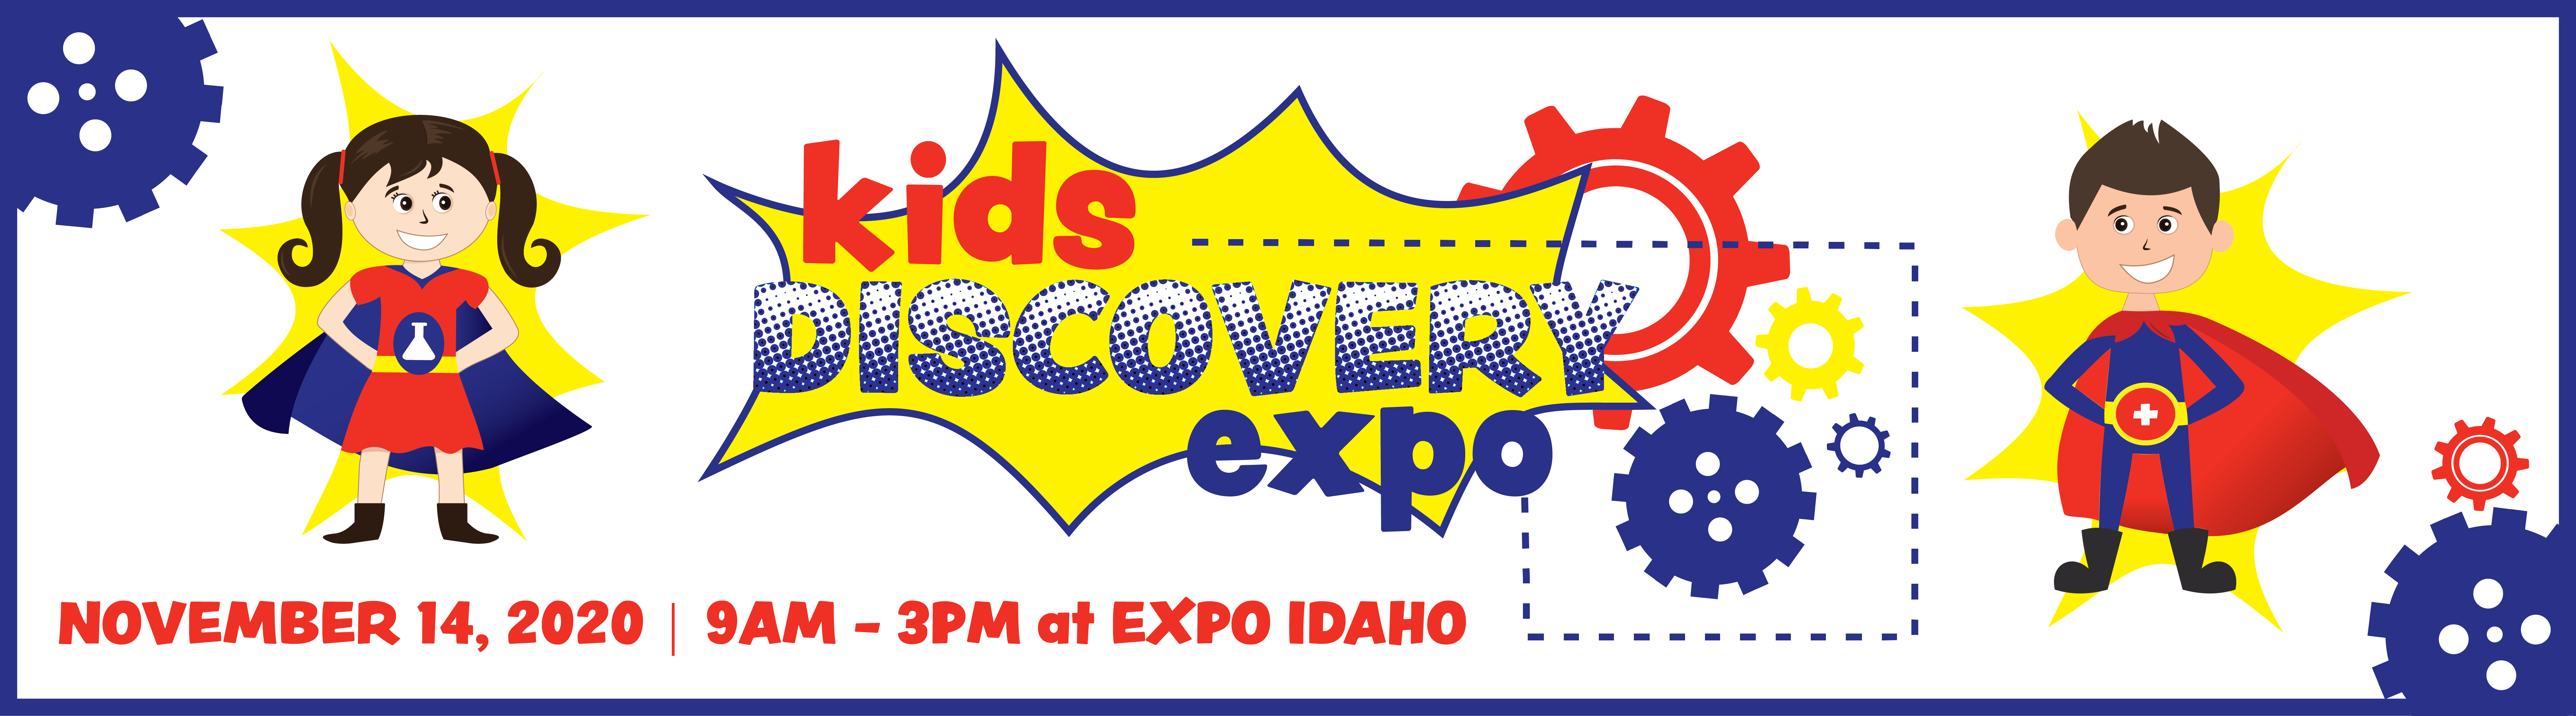 Kids Discovery Expo website slider